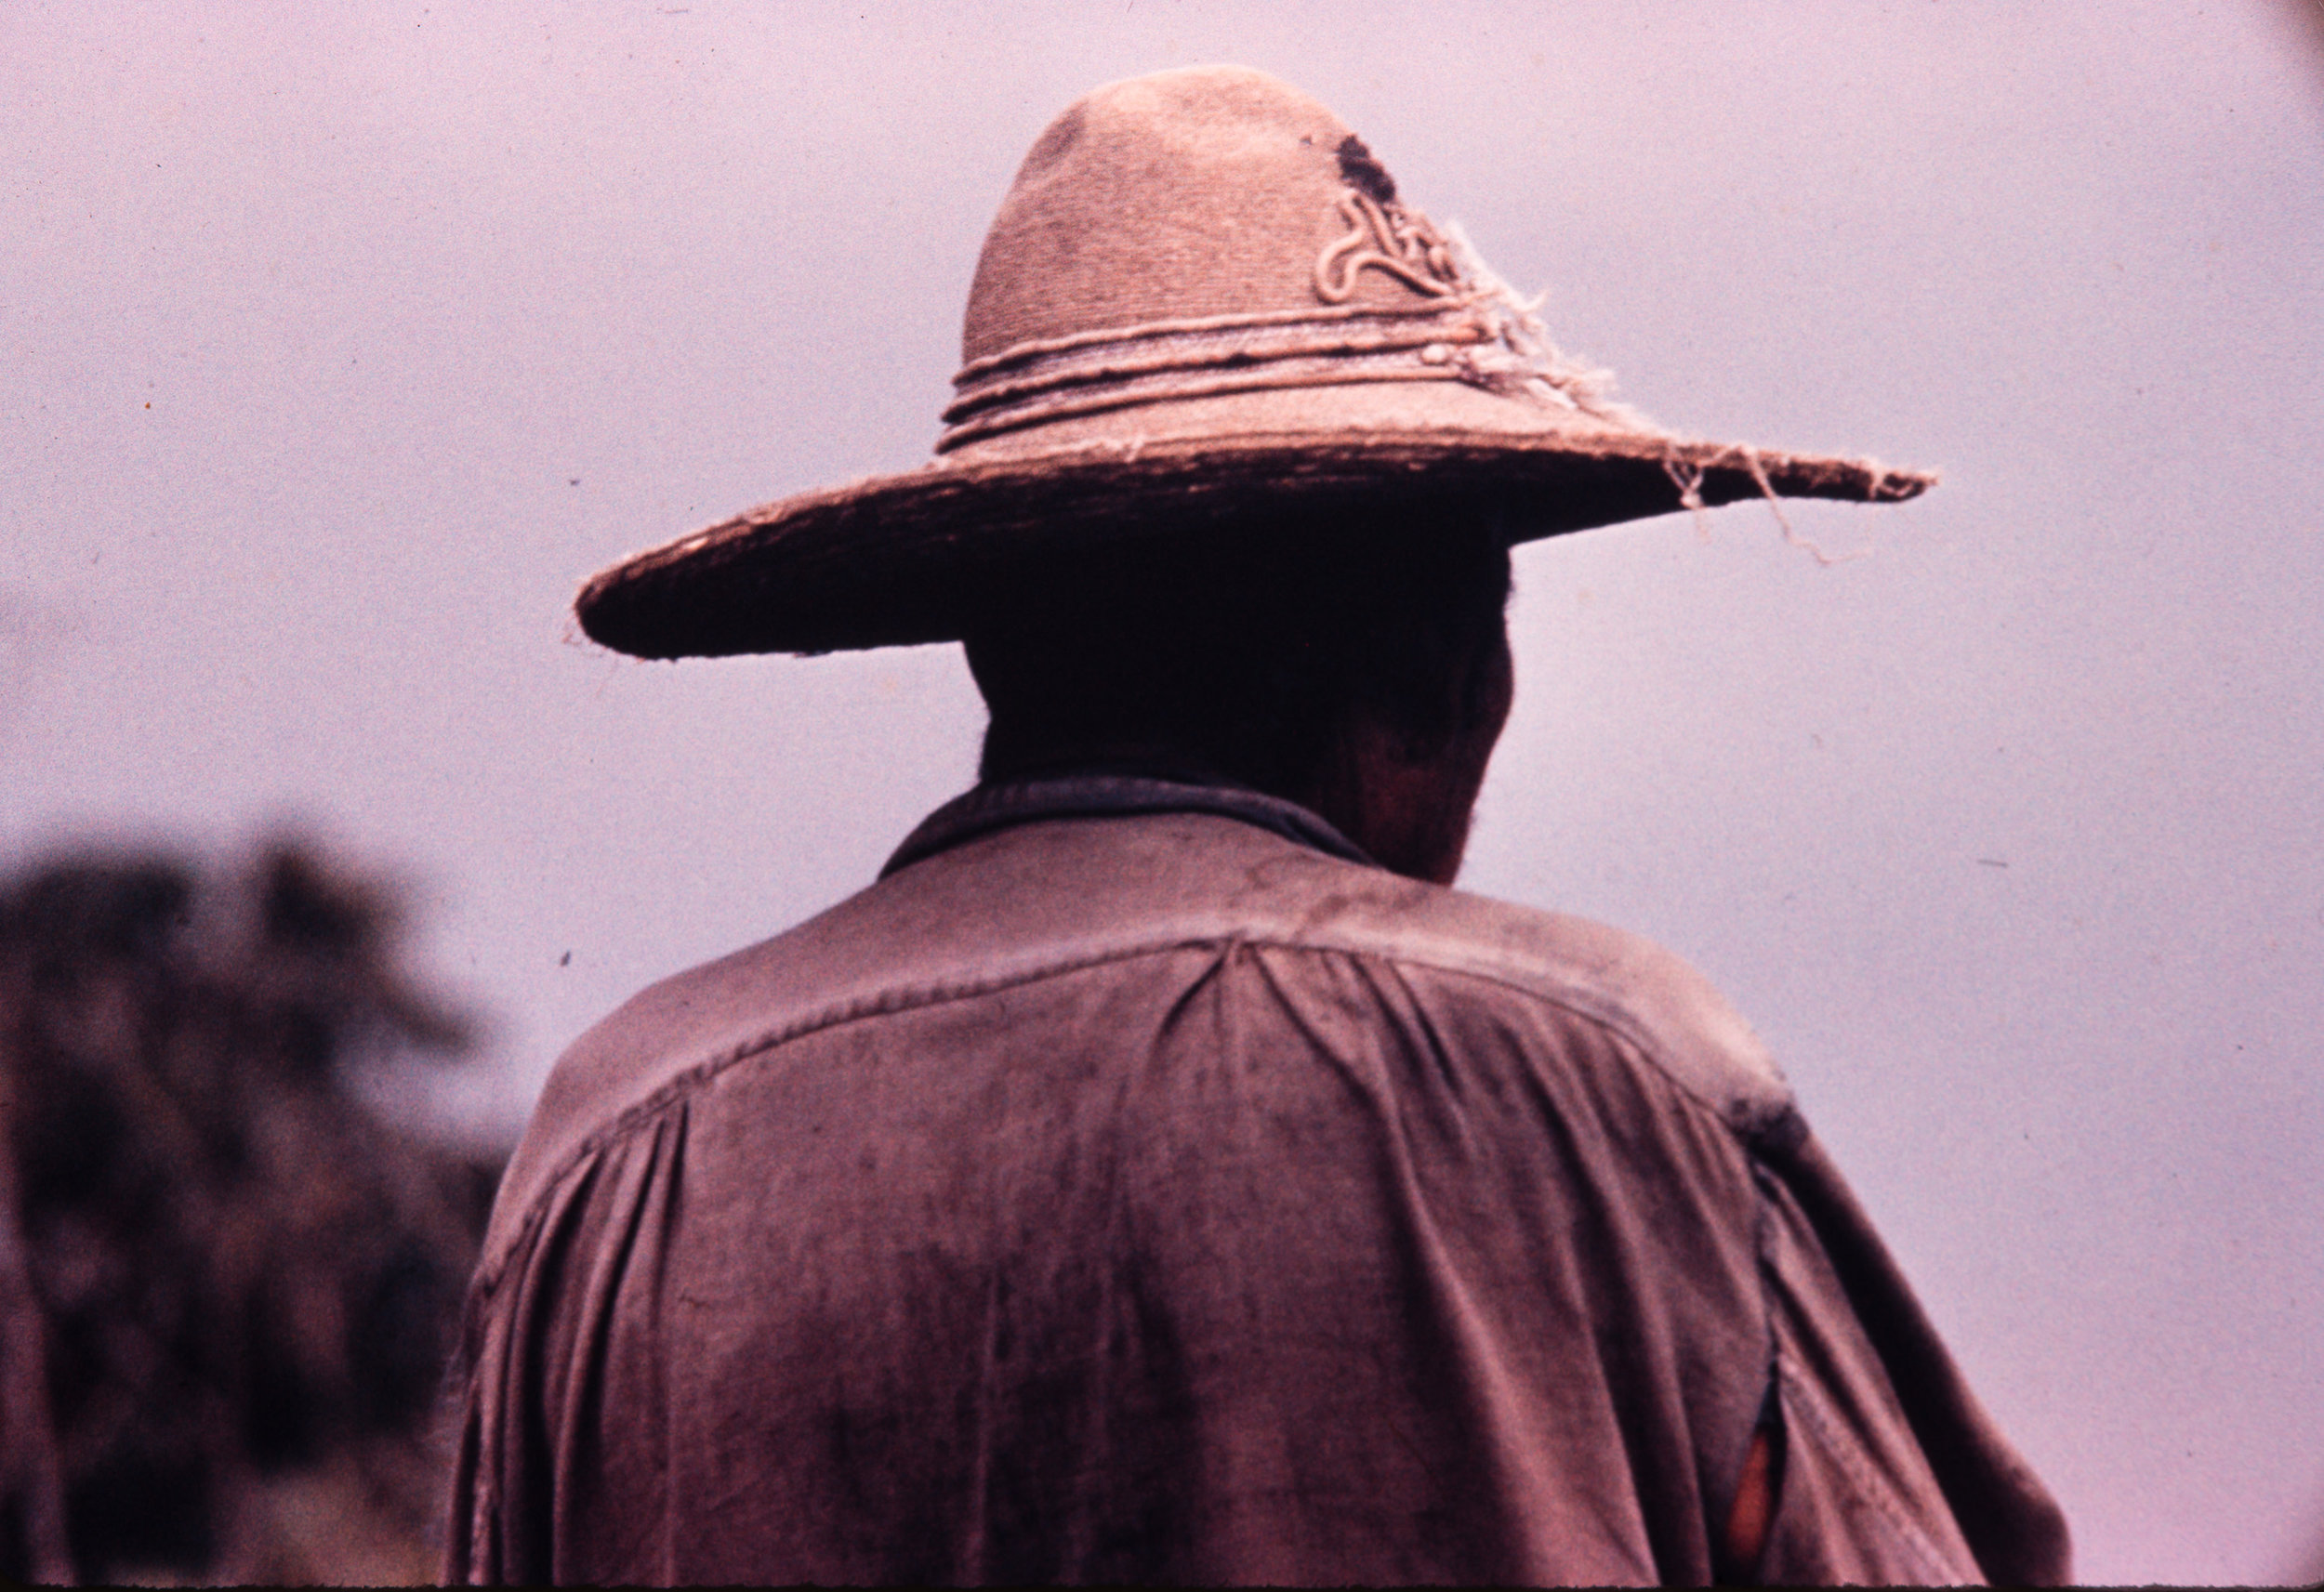 Man with hat from behind, Mexico, 1957